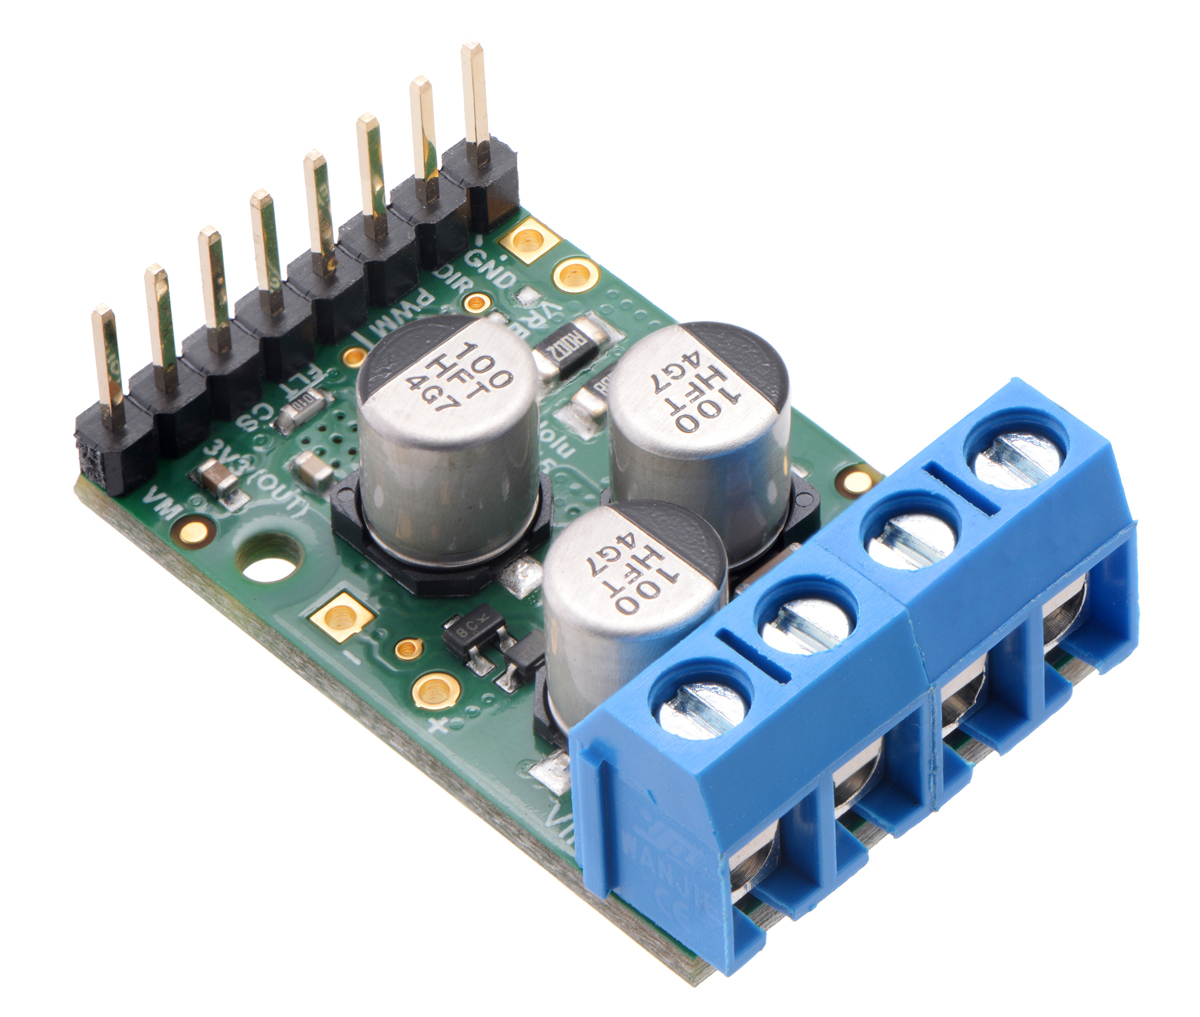 Pololu Brushed Single Mosfet H Bridge Dc Motor Driver G2 18v25 With Circuit Reverse Protection